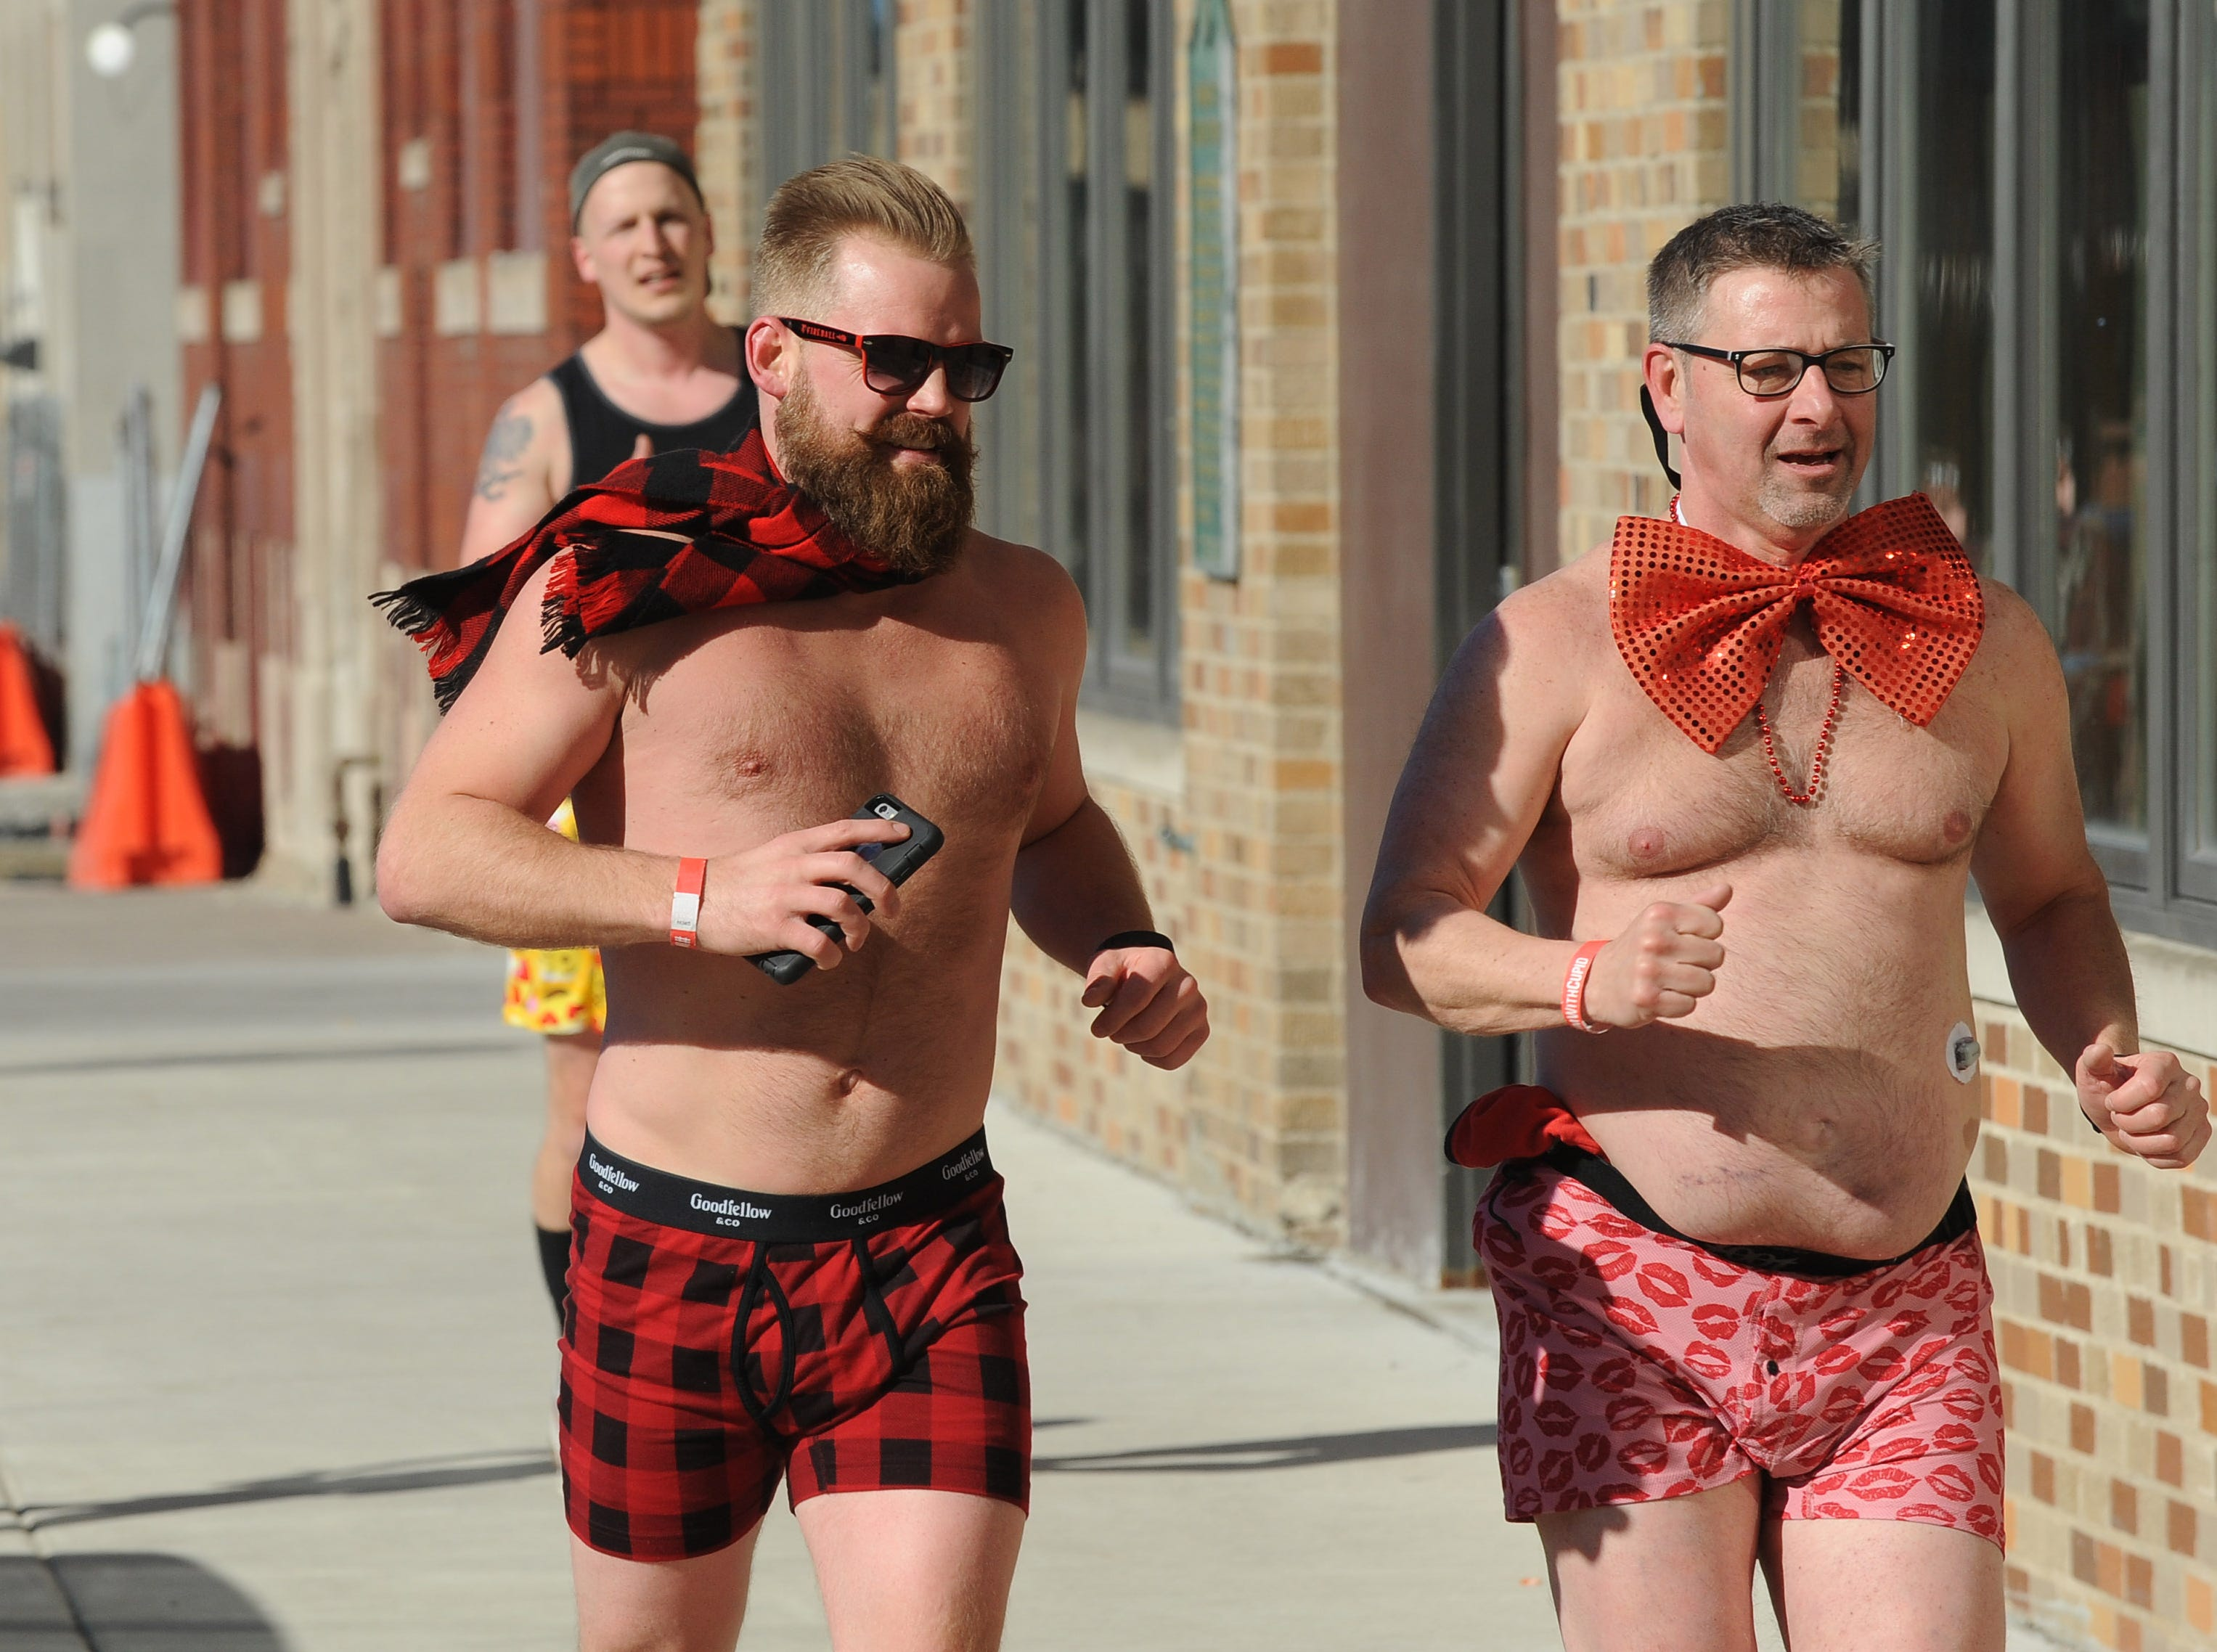 Boxers and bow ties hit the streets around the The Fillmore Detroit for Cupid's Undie Run.